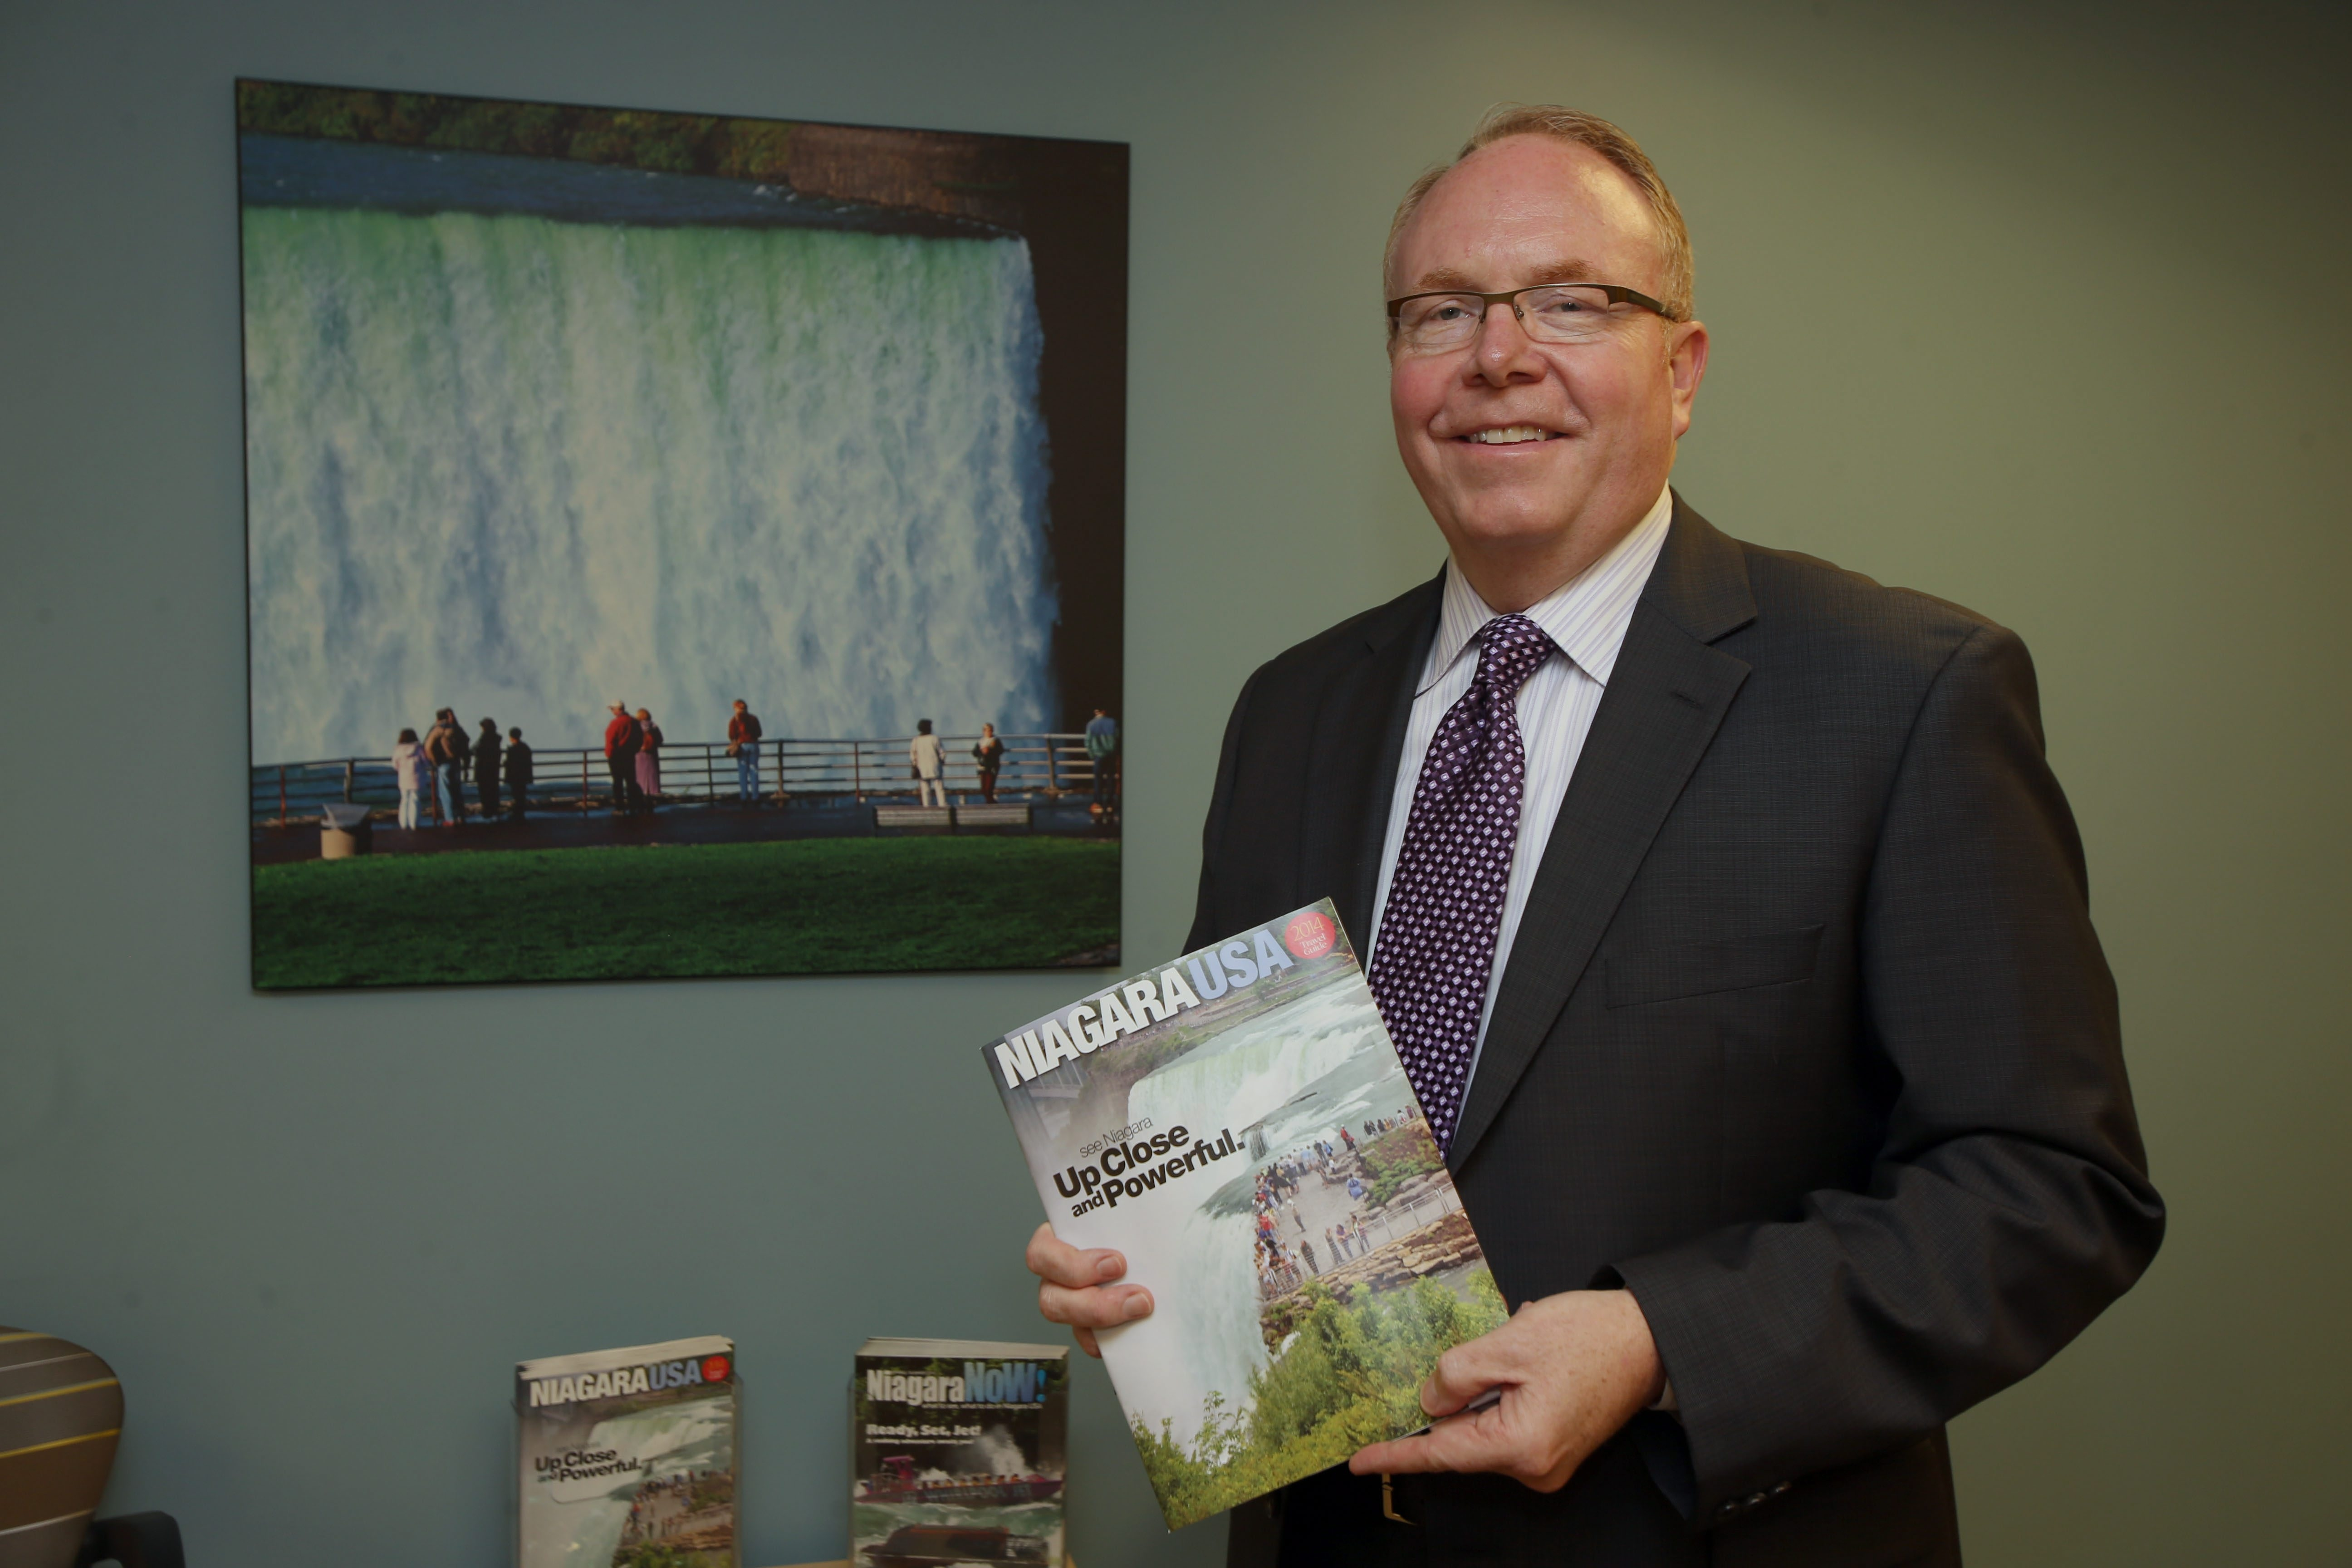 John Percy, president and CEO of the Niagara Tourism and Convention Corp., in the Niagara Falls Visitors Center.